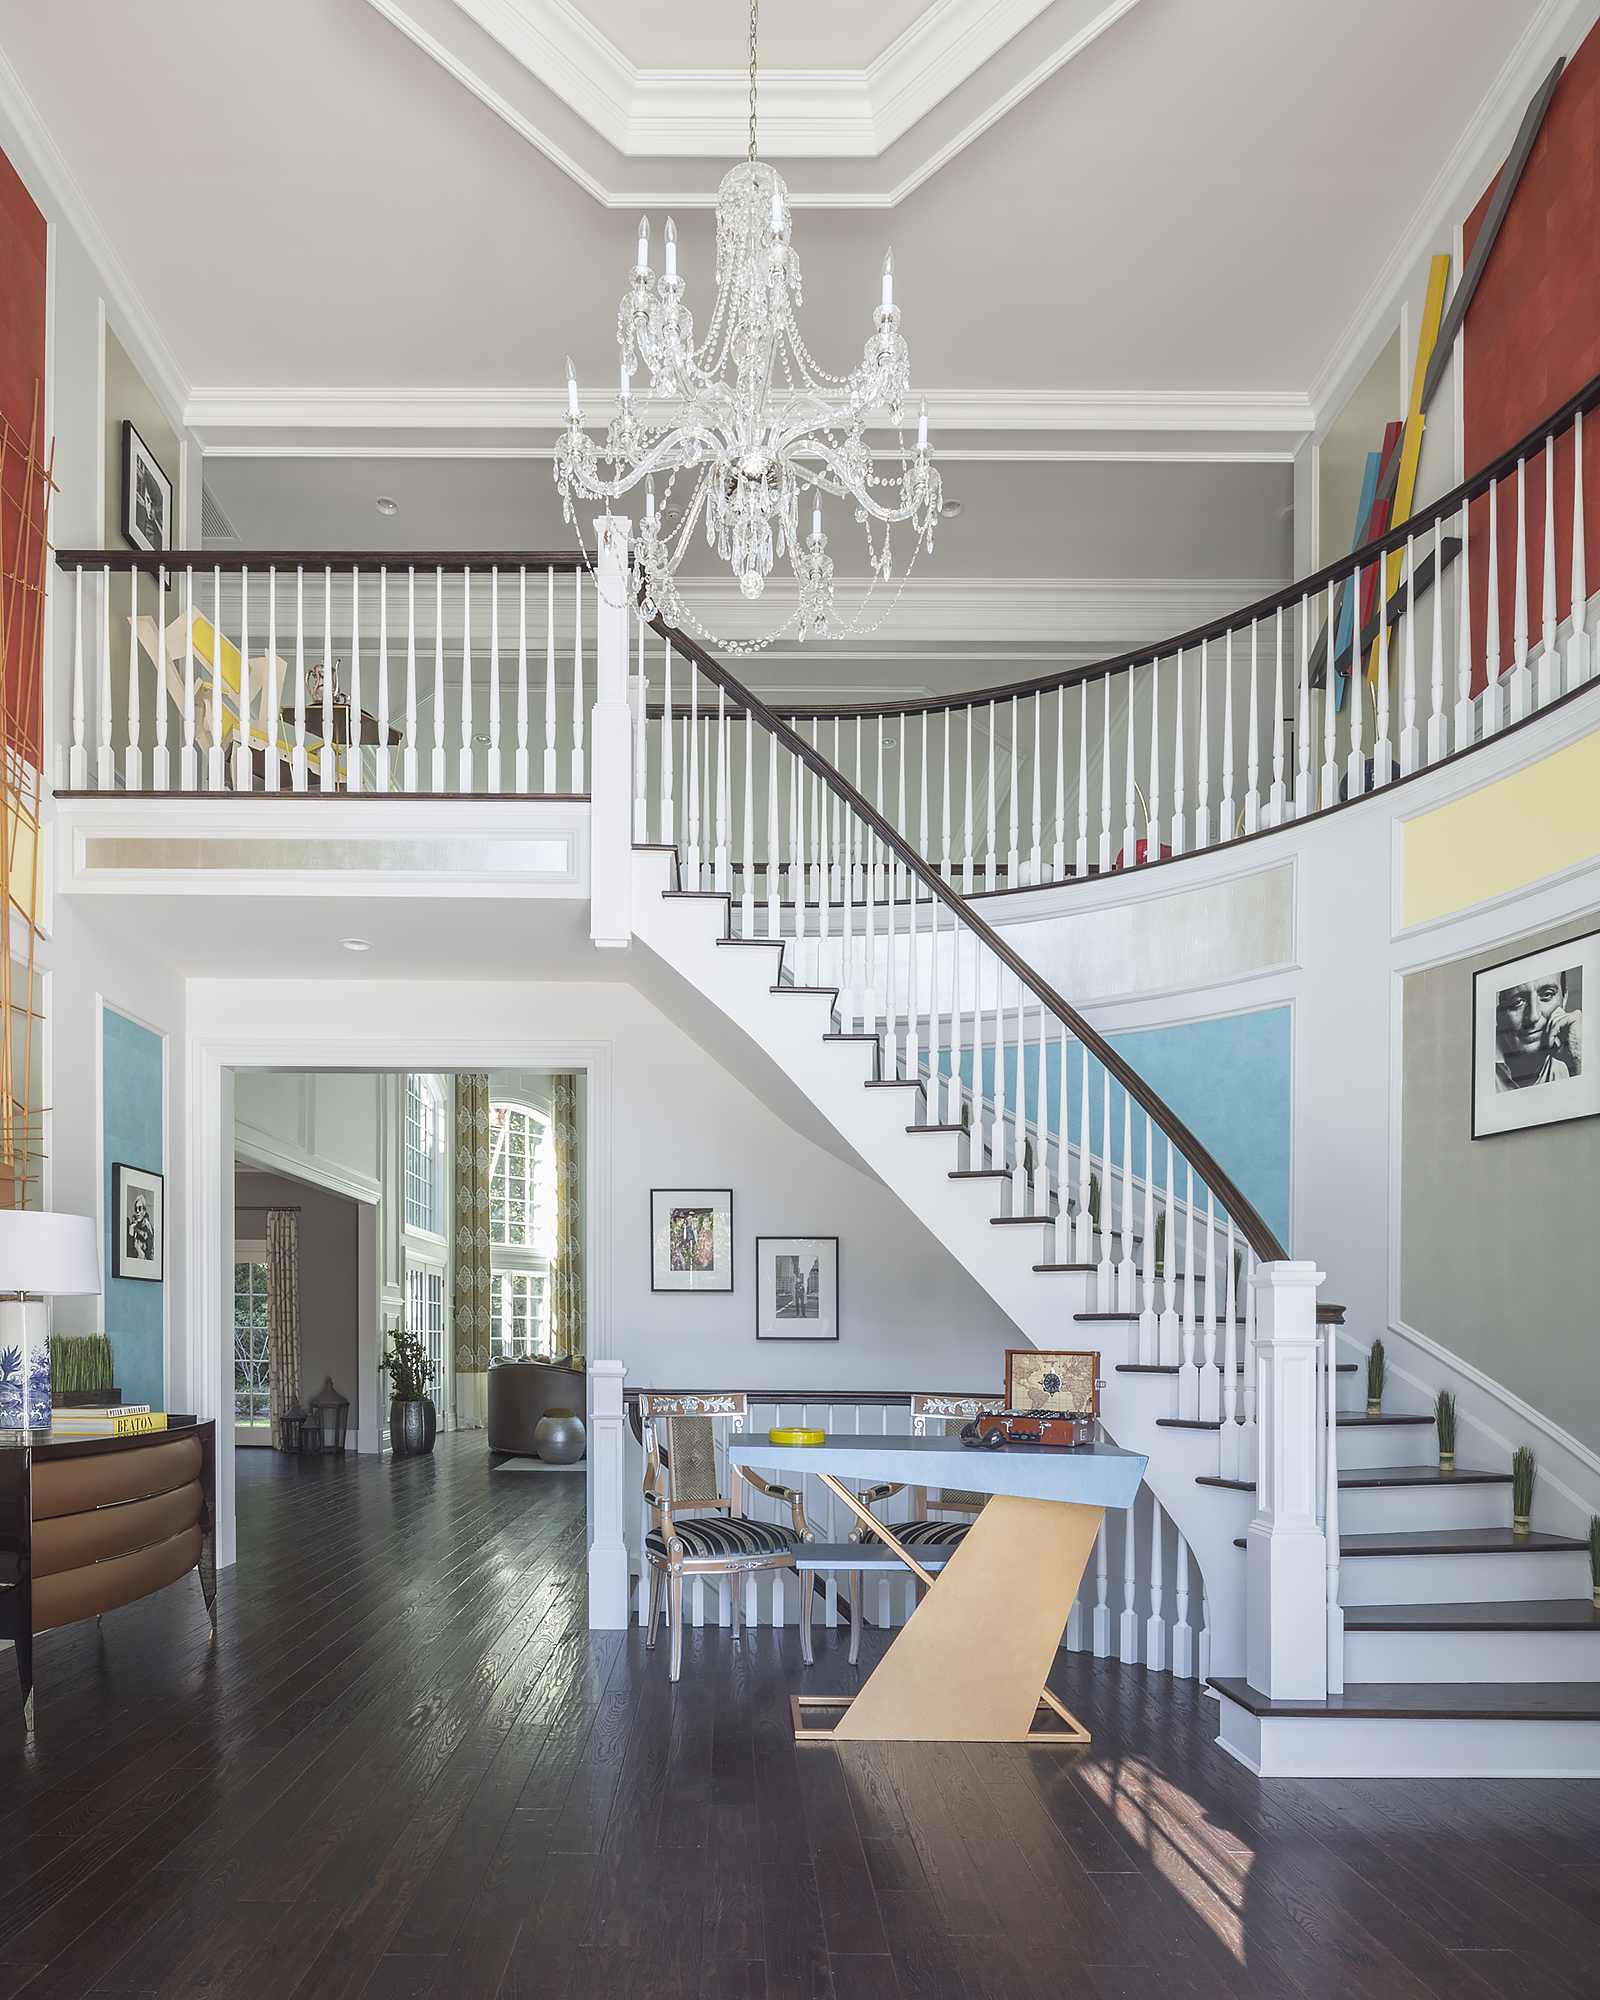 001 Entry_Hall_Contemporary_Project_For_Mansion_House_NJ_New_York_Sept_2016.jpg